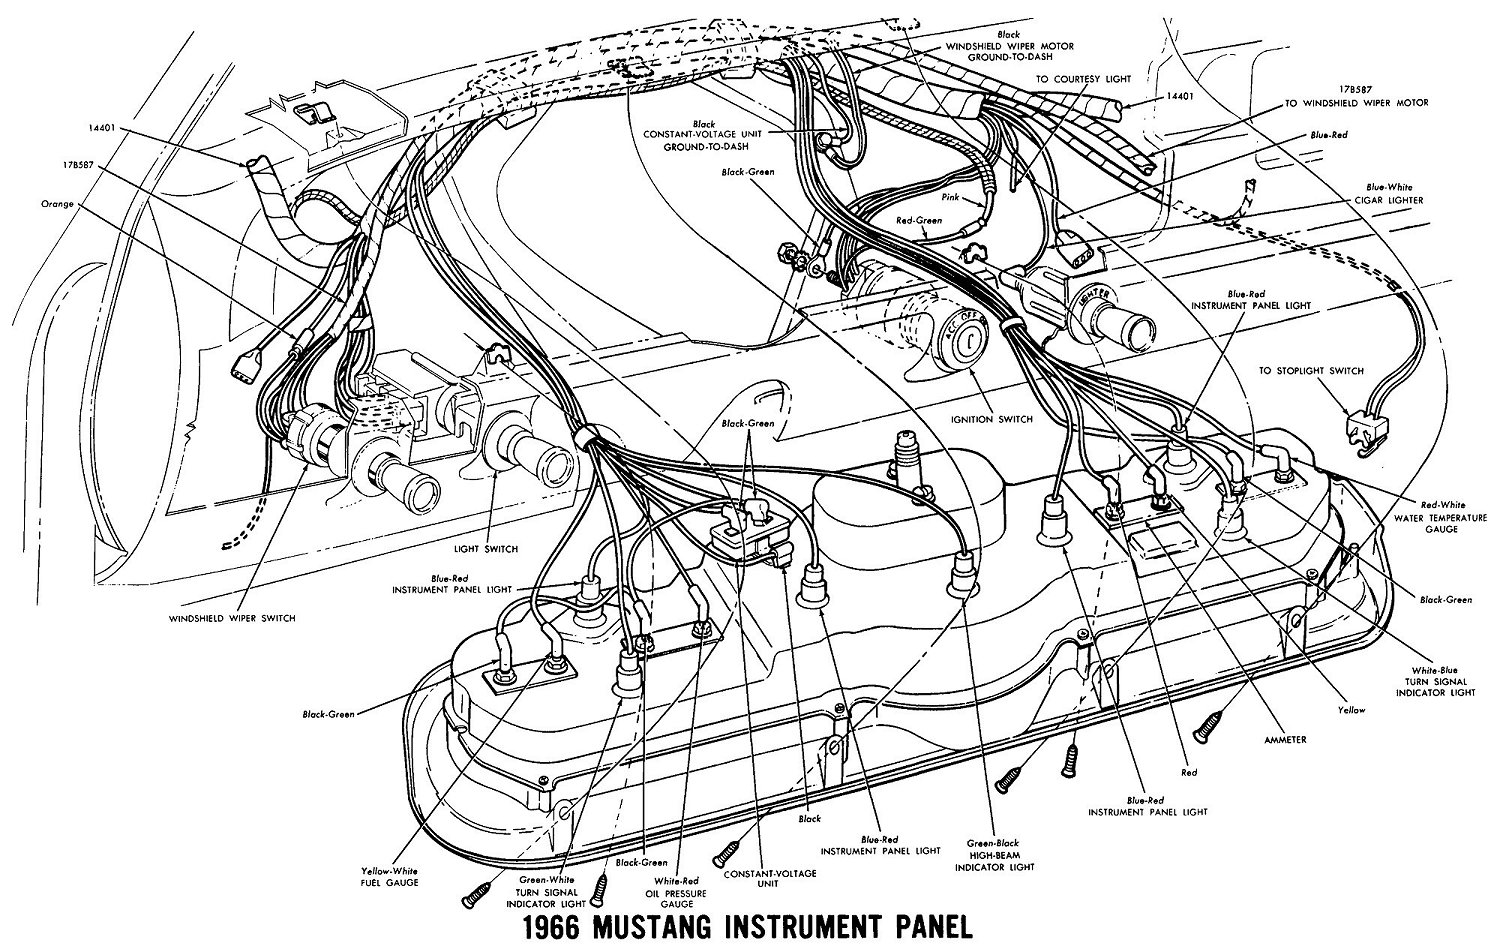 66instr 1968 mustang wiring diagram manual 68 mustang ignition wiring 1969 Mustang Wiring Diagram PDF at suagrazia.org